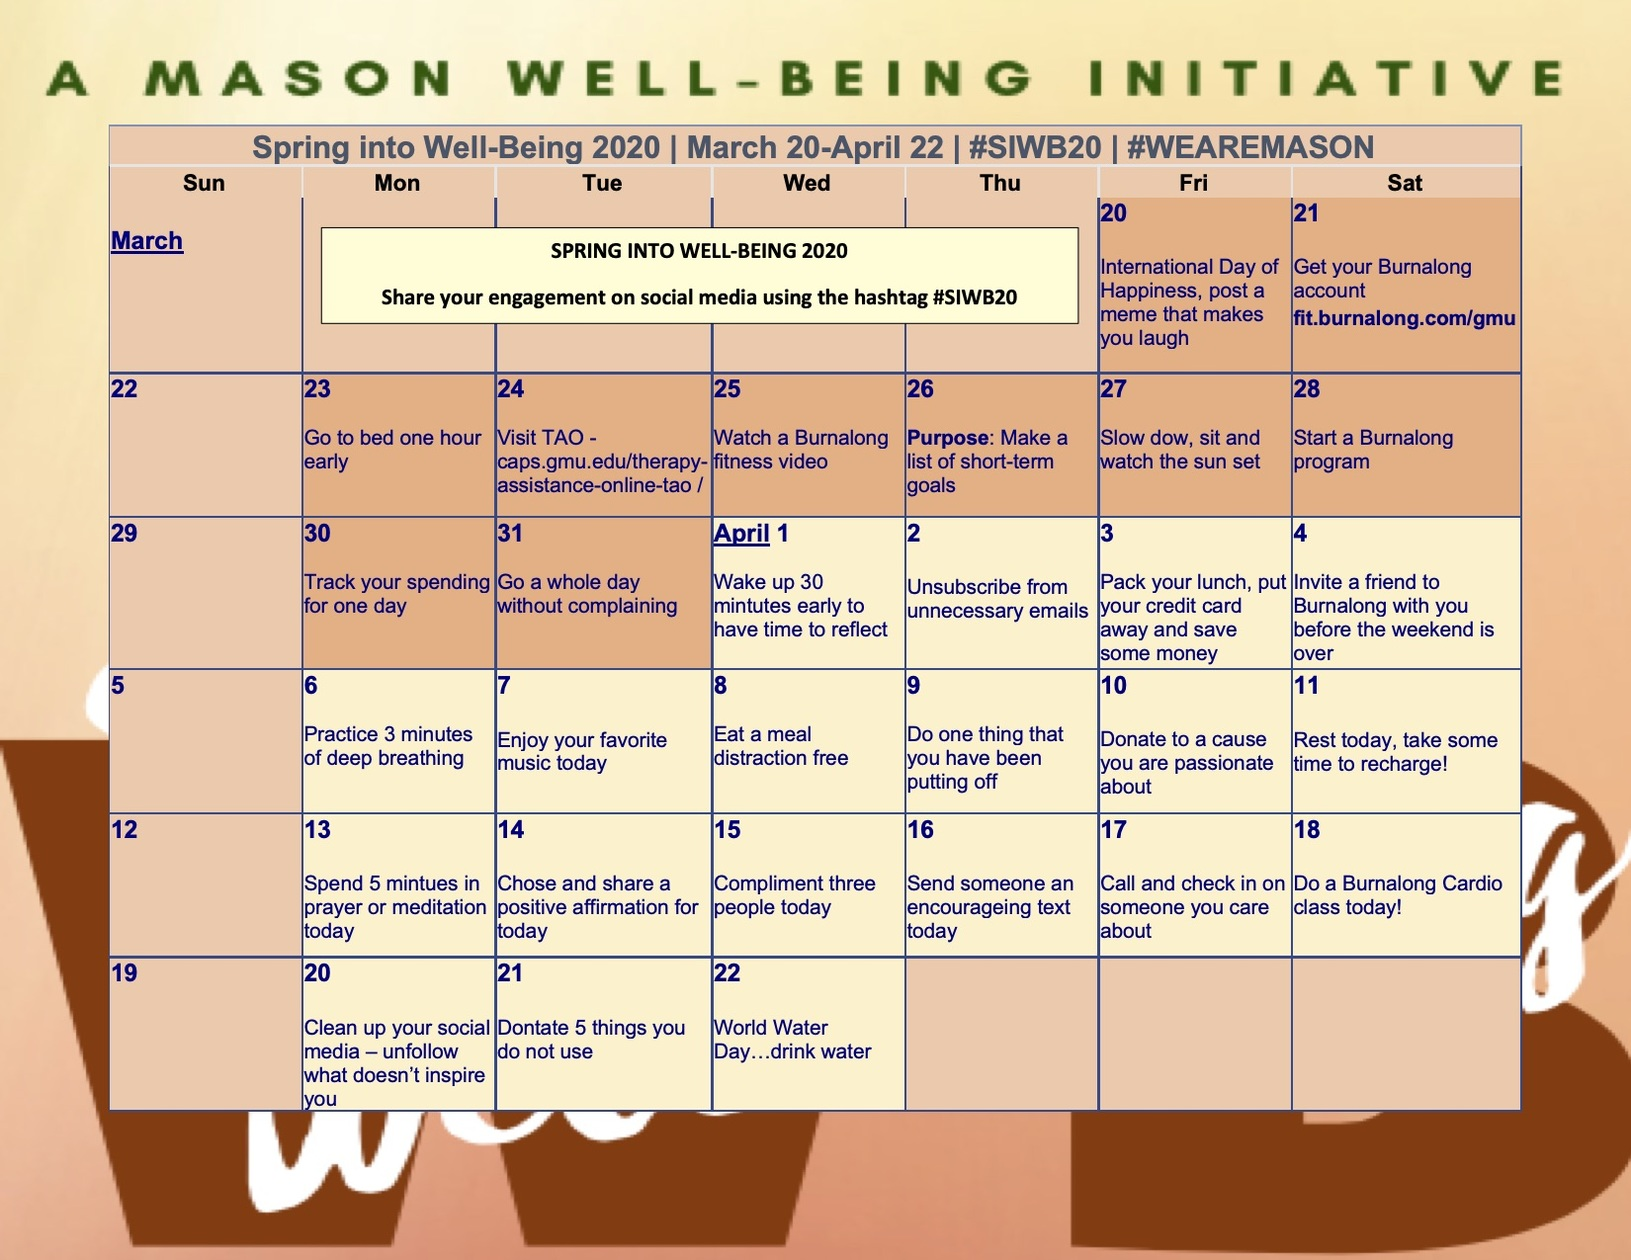 Spring into Well-Being 2020 (#SIWB20) Happens March 20-April 22